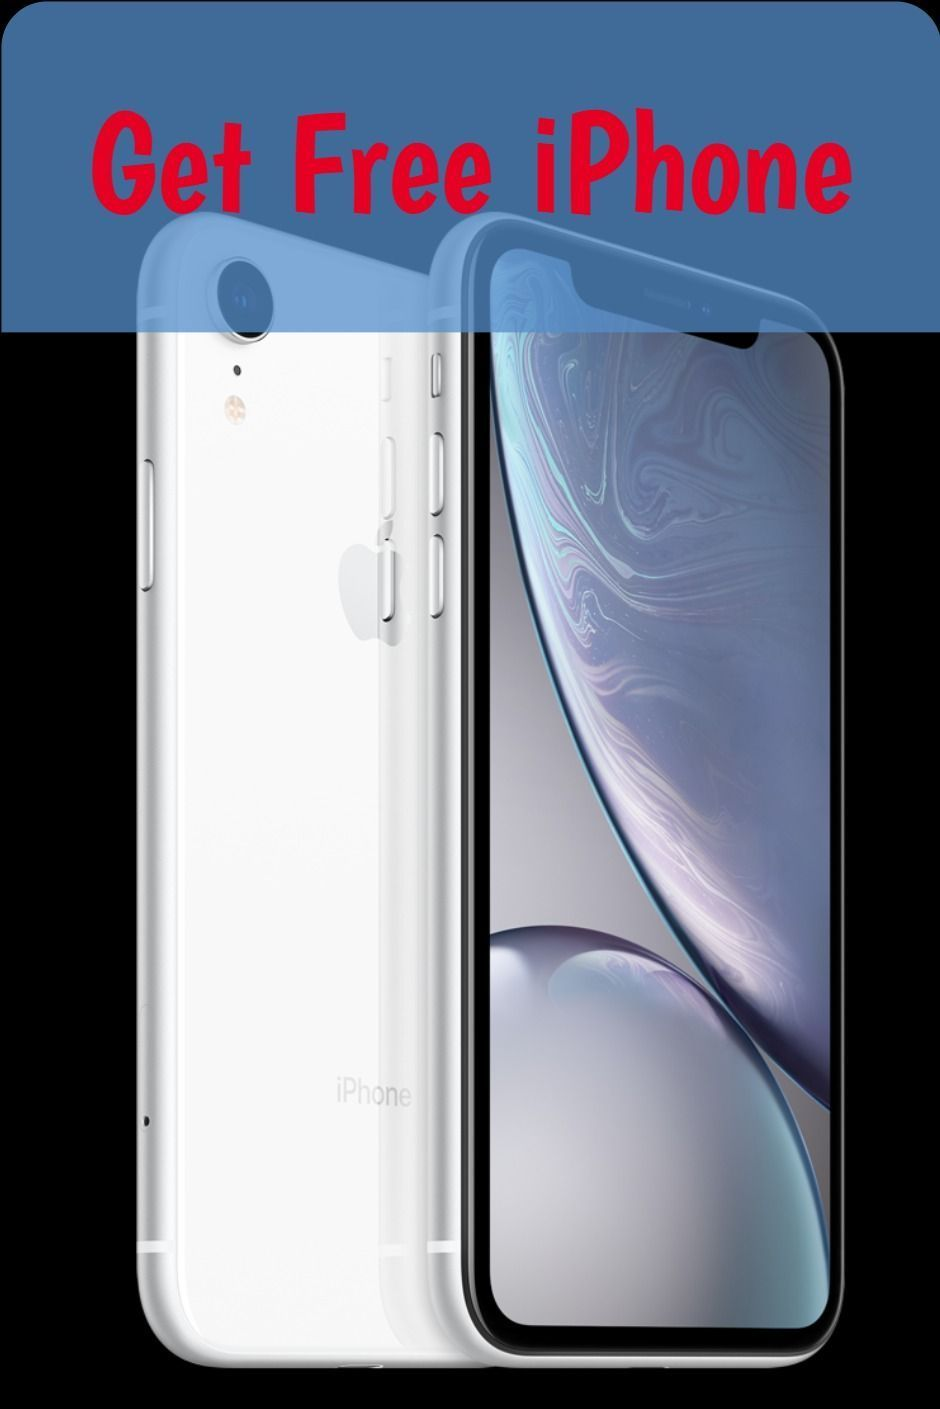 Get iphone xr for free free iphone get free iphone iphone